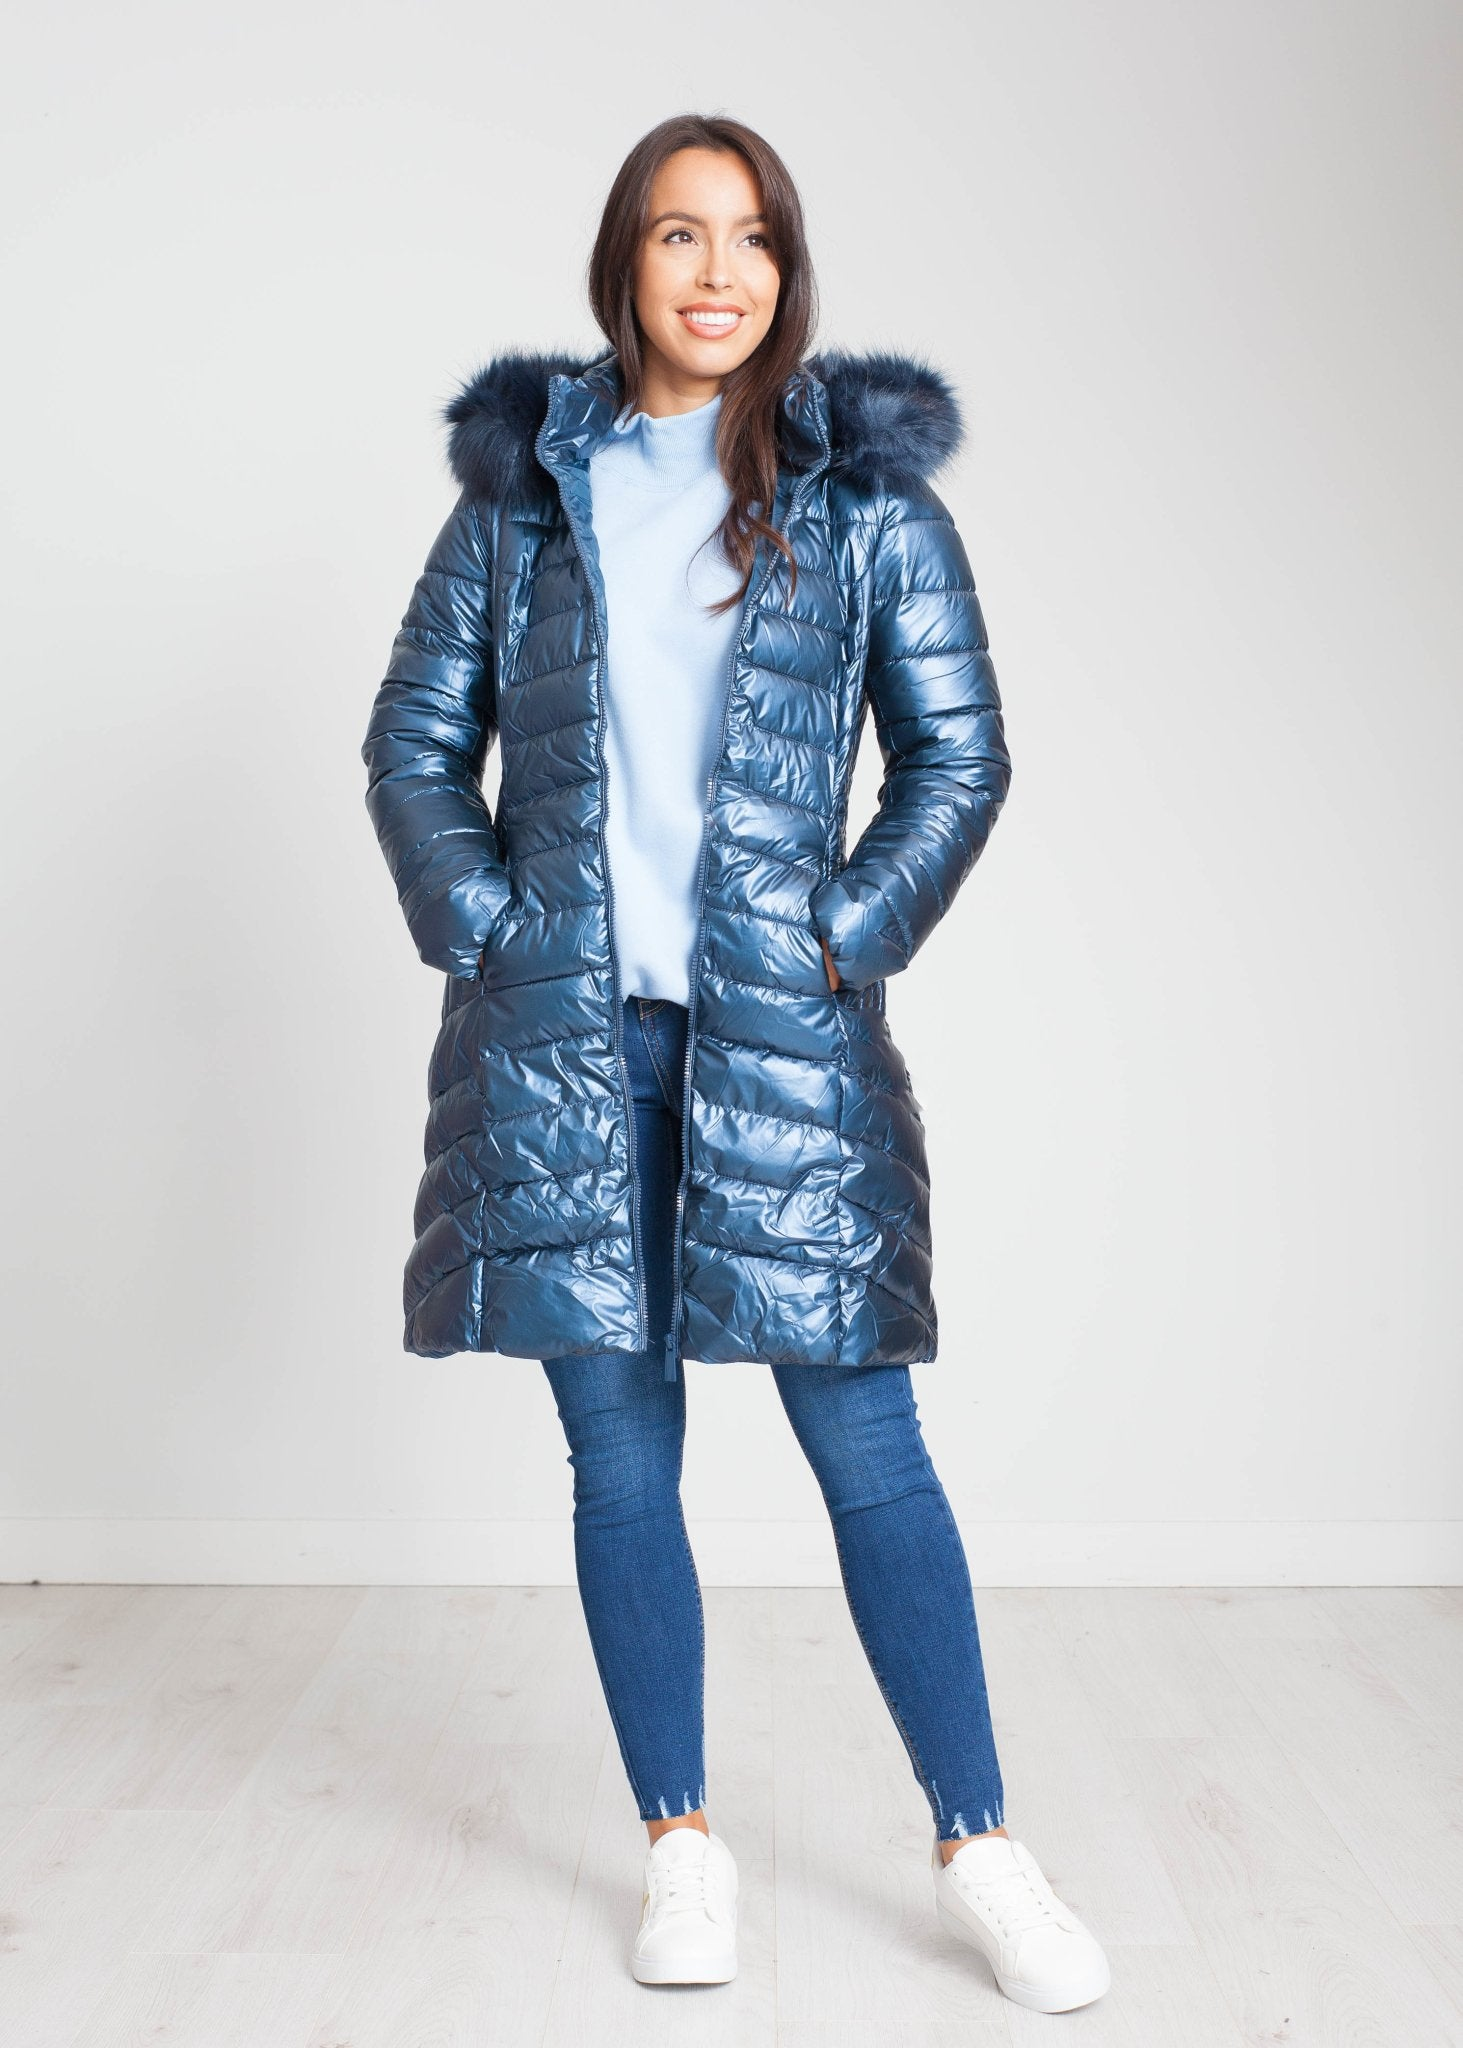 Jayme Quilted Coat In Ice Blue - The Walk in Wardrobe